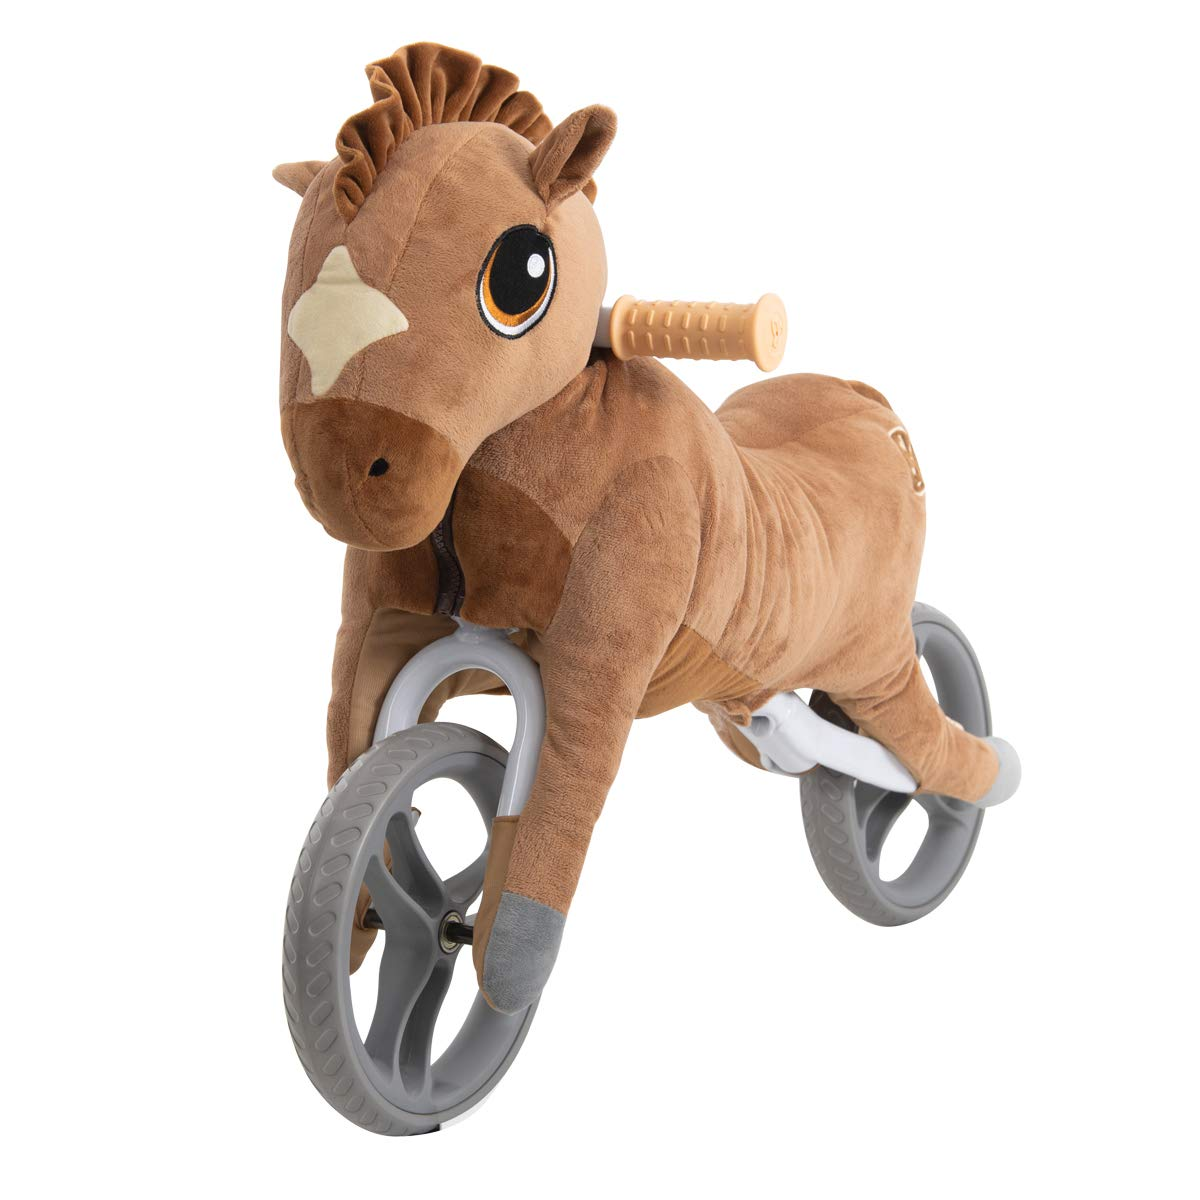 Yvolution My Buddy Wheels Dino Unicorn Horse Balance Bike with Plush Toy | Training Bicycle for Toddlers Age 2 Years + (Horse)